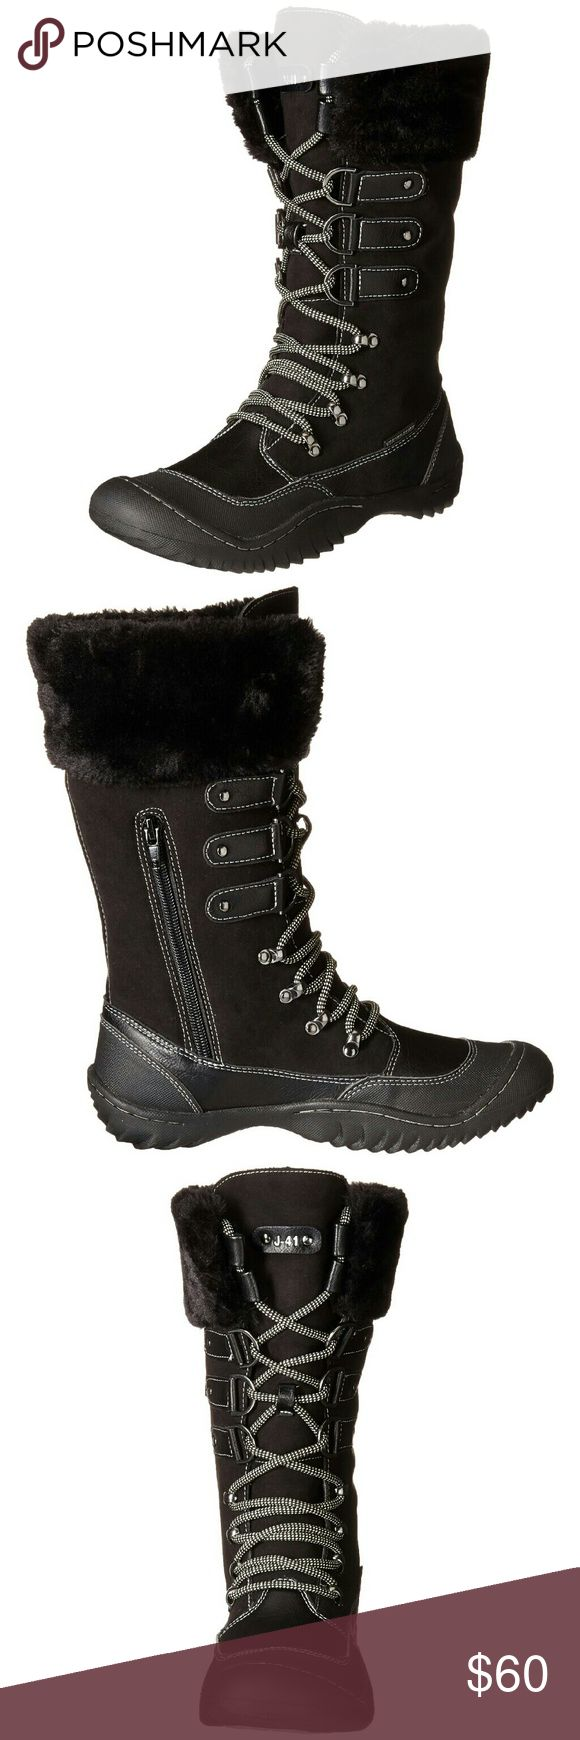 "J-41 Duchess Snow Boots W 10M Vegan Friendly Black 50% Micro Suede/25% Rubber/25% Faux Fur Imported Rubber sole Shaft measures approximately 11"" from arch Heel measures approximately 1/2"" Waterproof Eco friendly All terra traction Memory foam insert Faux fur liner great for the cooler weather Made in China  Box may have shelf wear.              Unique and with amazing comfort features the new J-41 Duchess is winter boot royalty! Featuring an outstanding and impeccable design the new Duchess…"